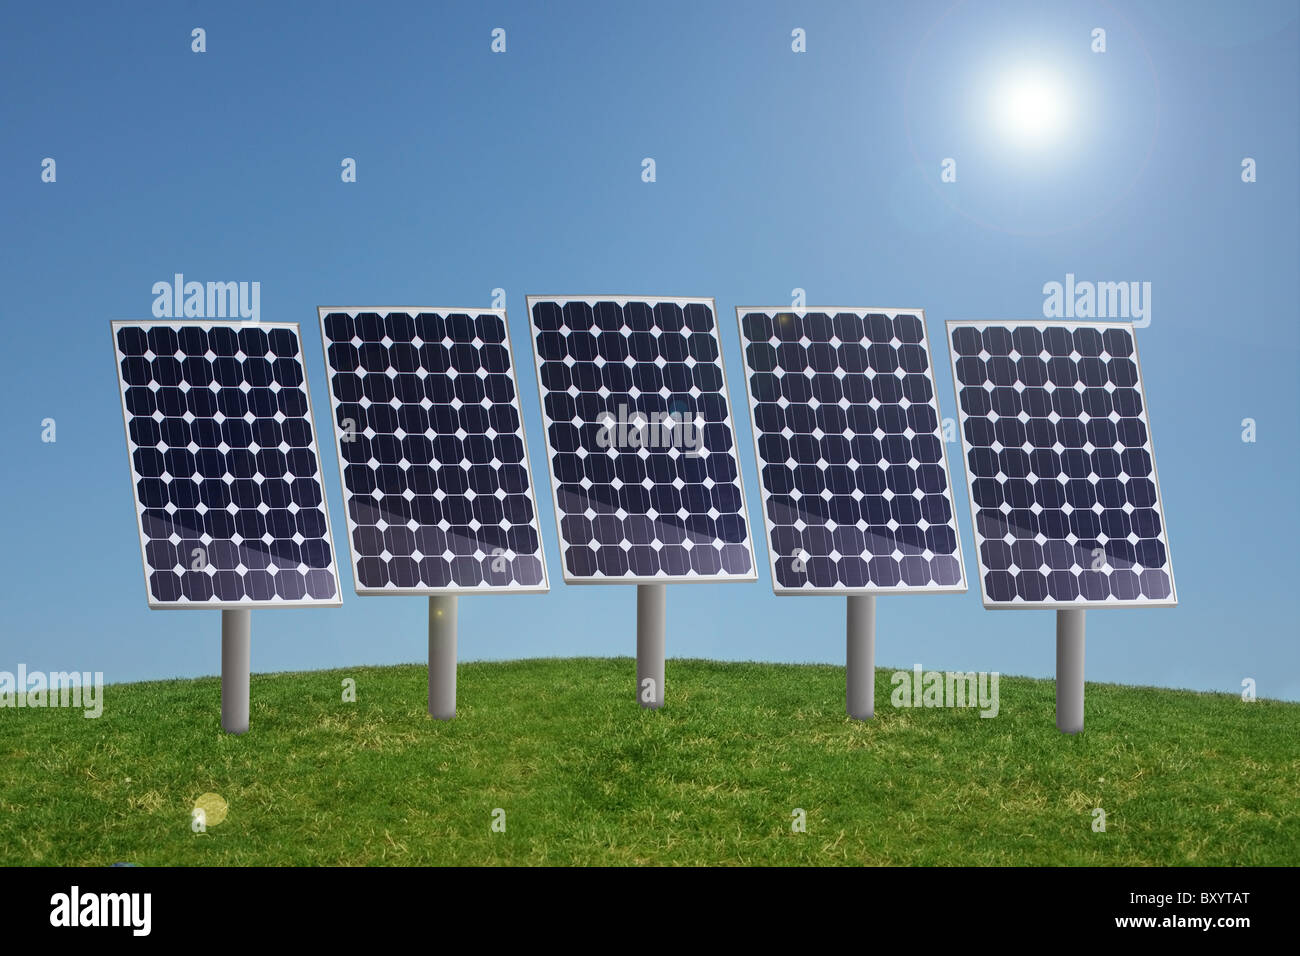 Row of solar panels in grass with blue sky and sun - Stock Image